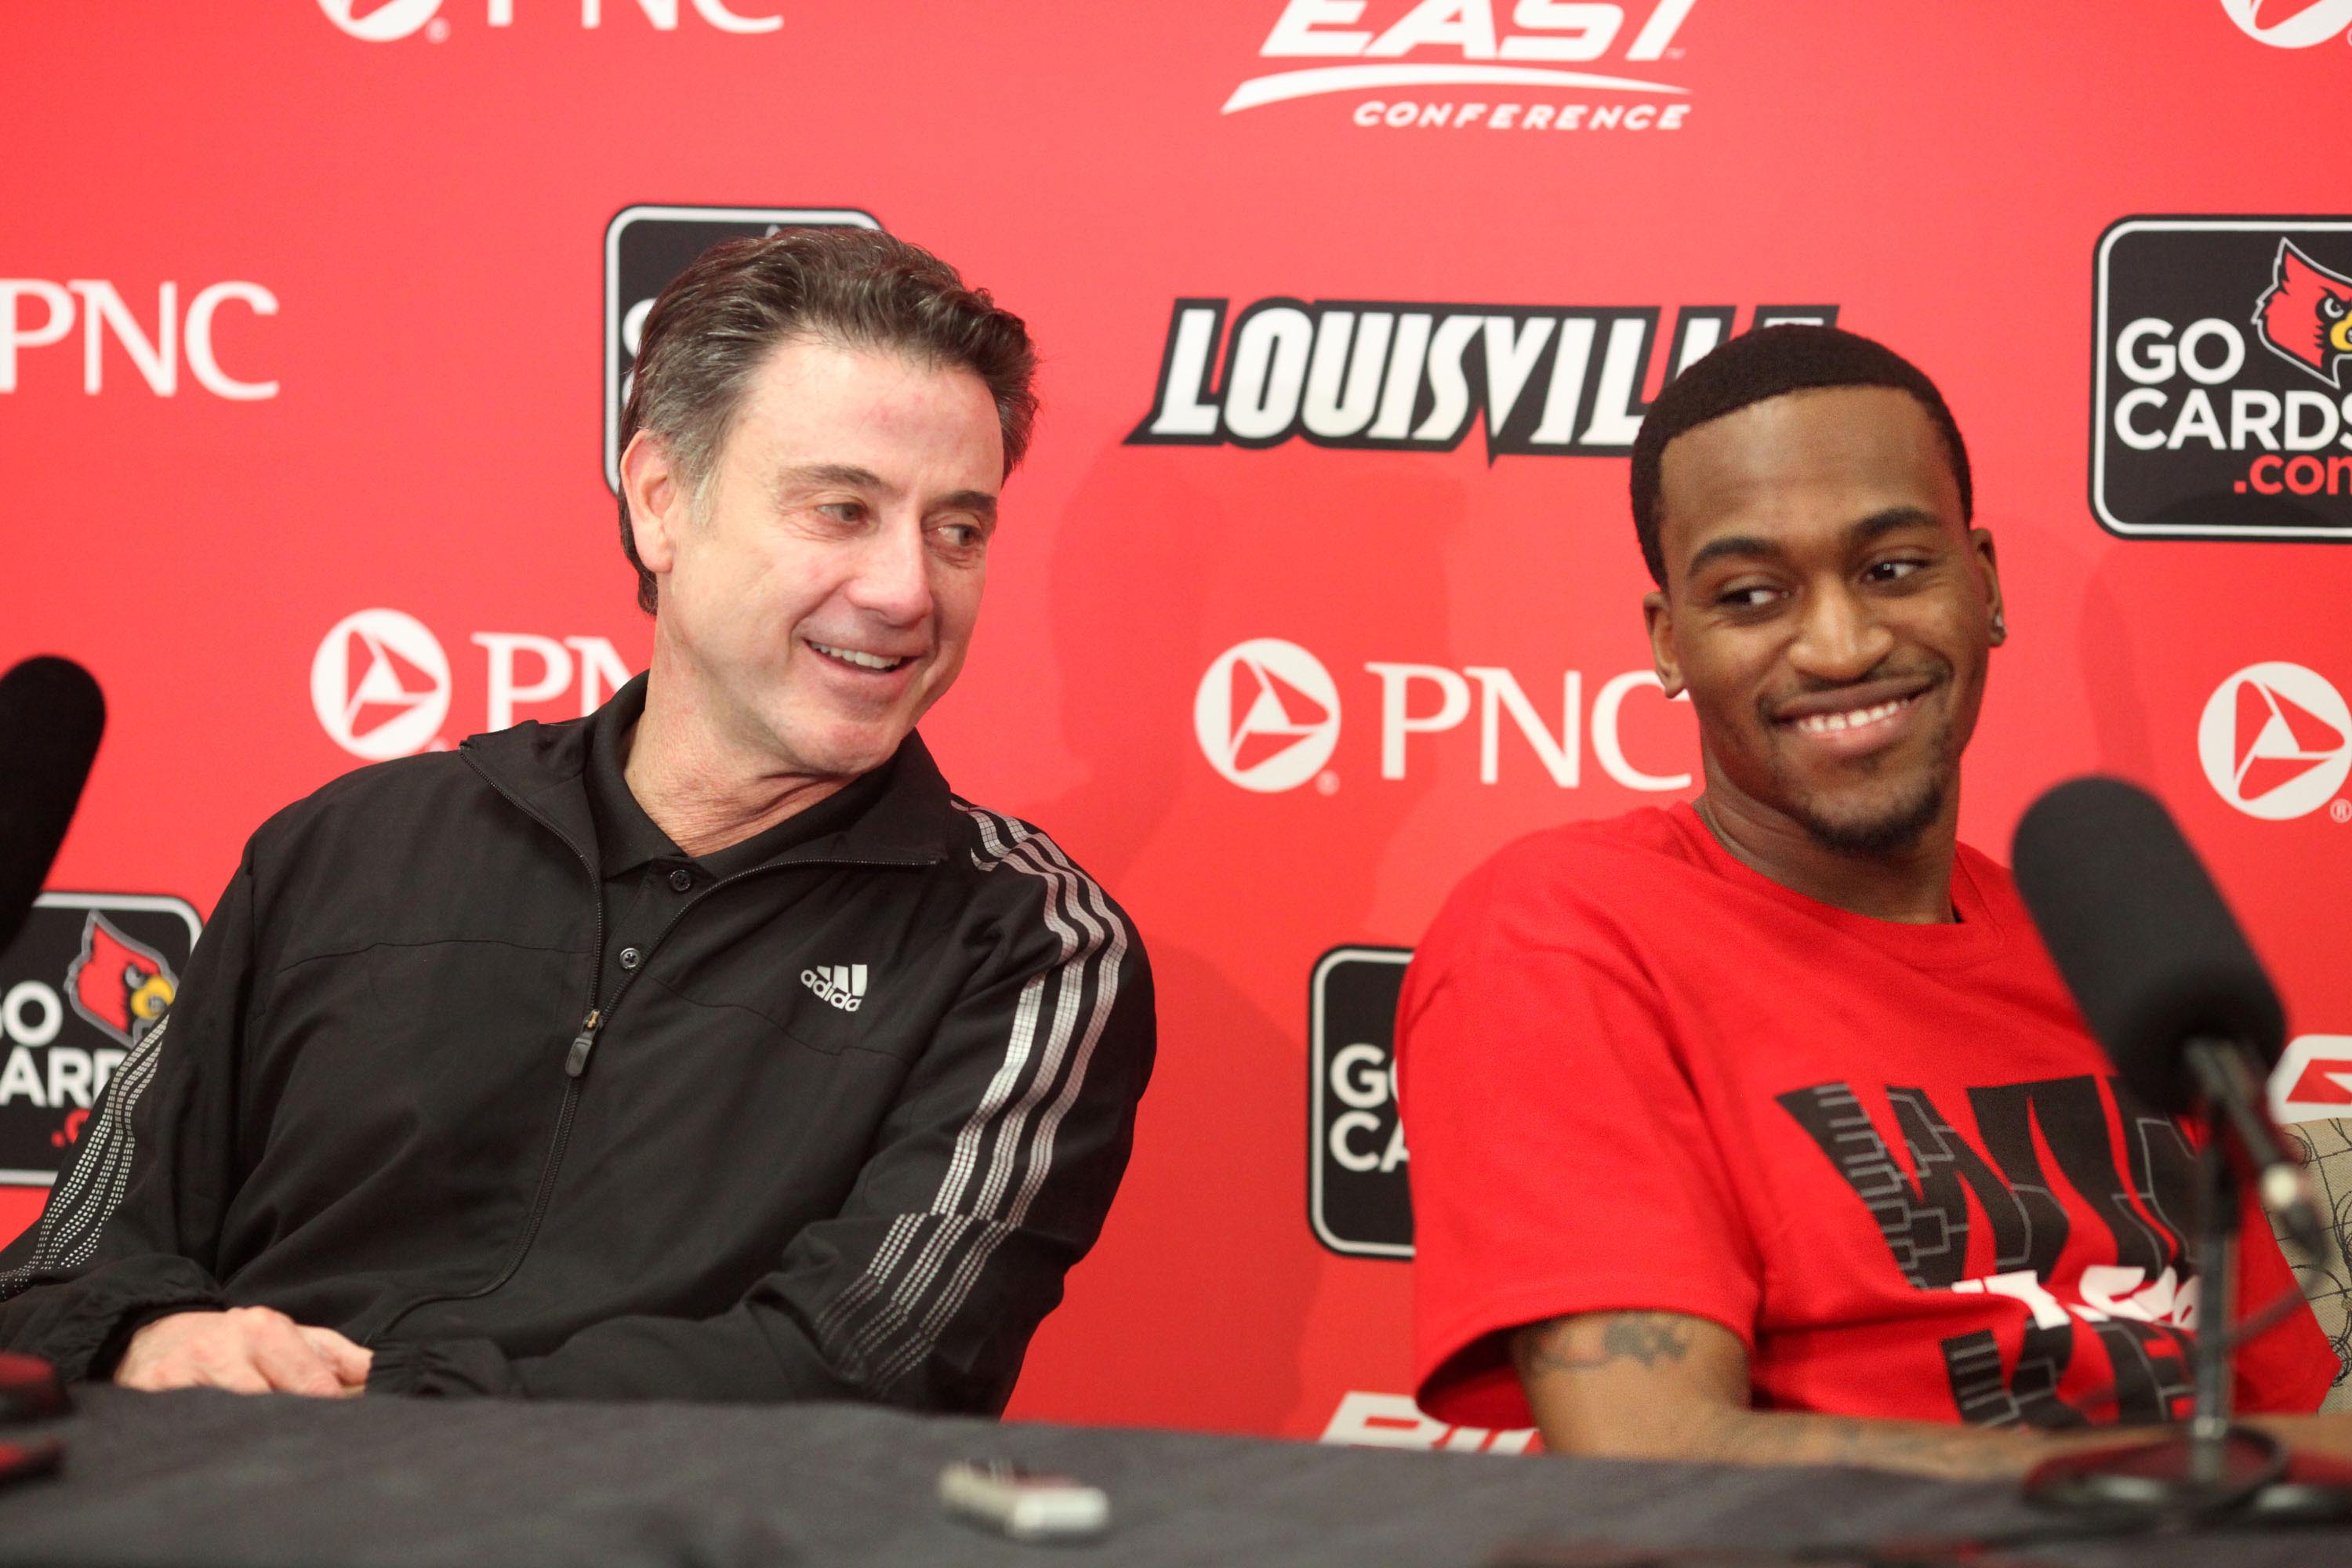 Louisville coach Rick Pitino and Kevin Ware laugh during a press conference Wednesday. (USA Today)